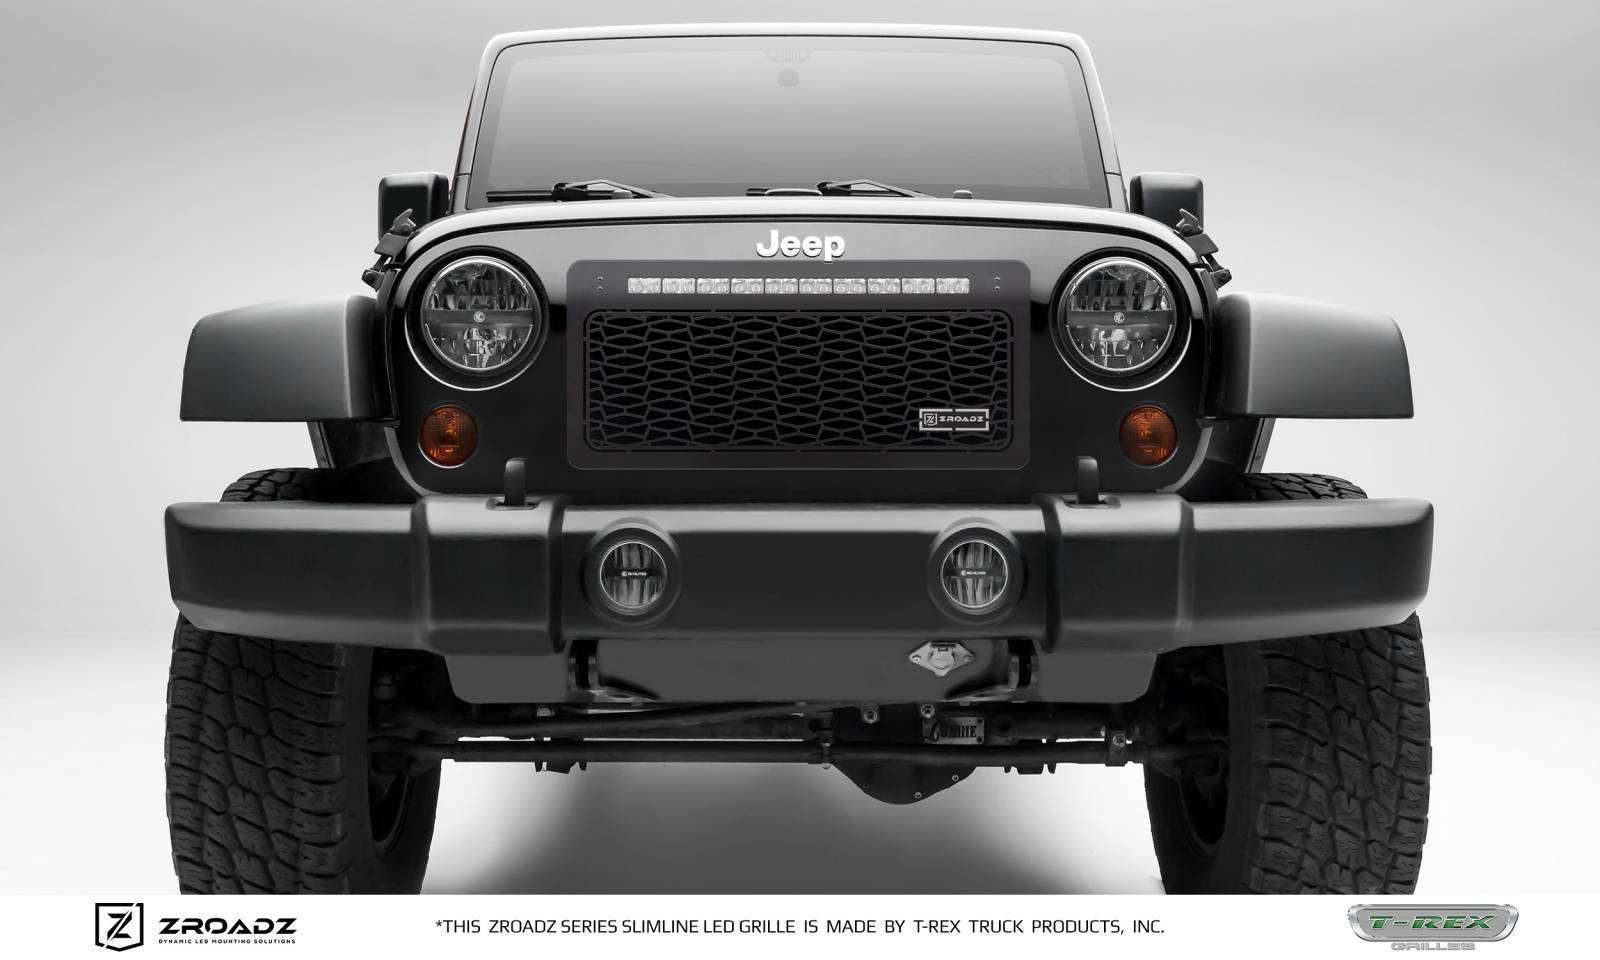 T-REX Grilles - 2007-2018 Jeep JK Main Grille, Including (1) 20 Inch ZROADZ LED Straight Single Row Slim Light Bar - Z314831-20T